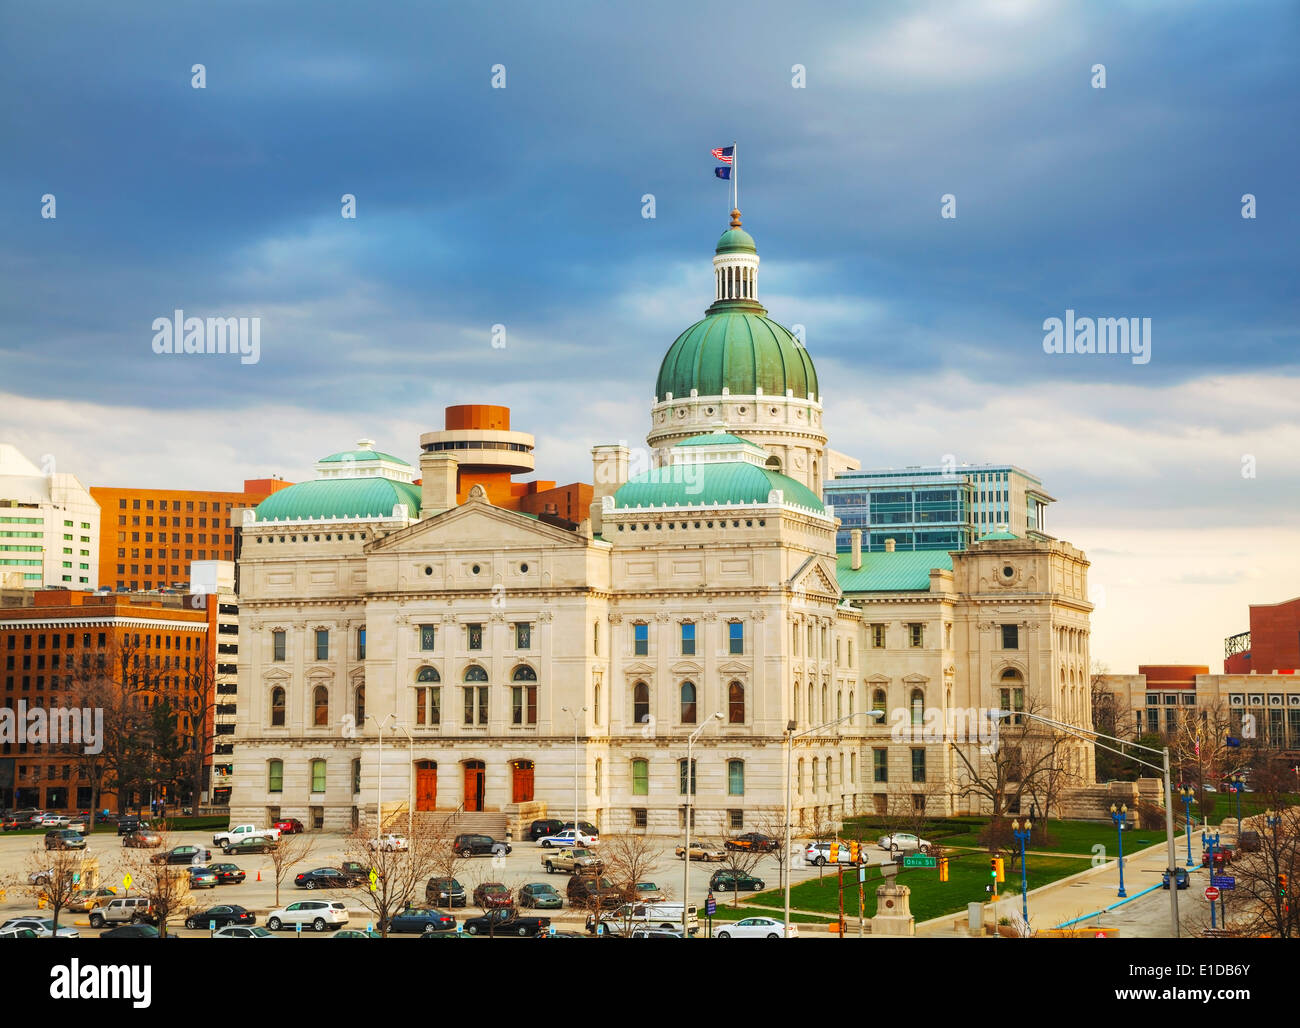 Indiana state capitol building in Indianapolis - Stock Image